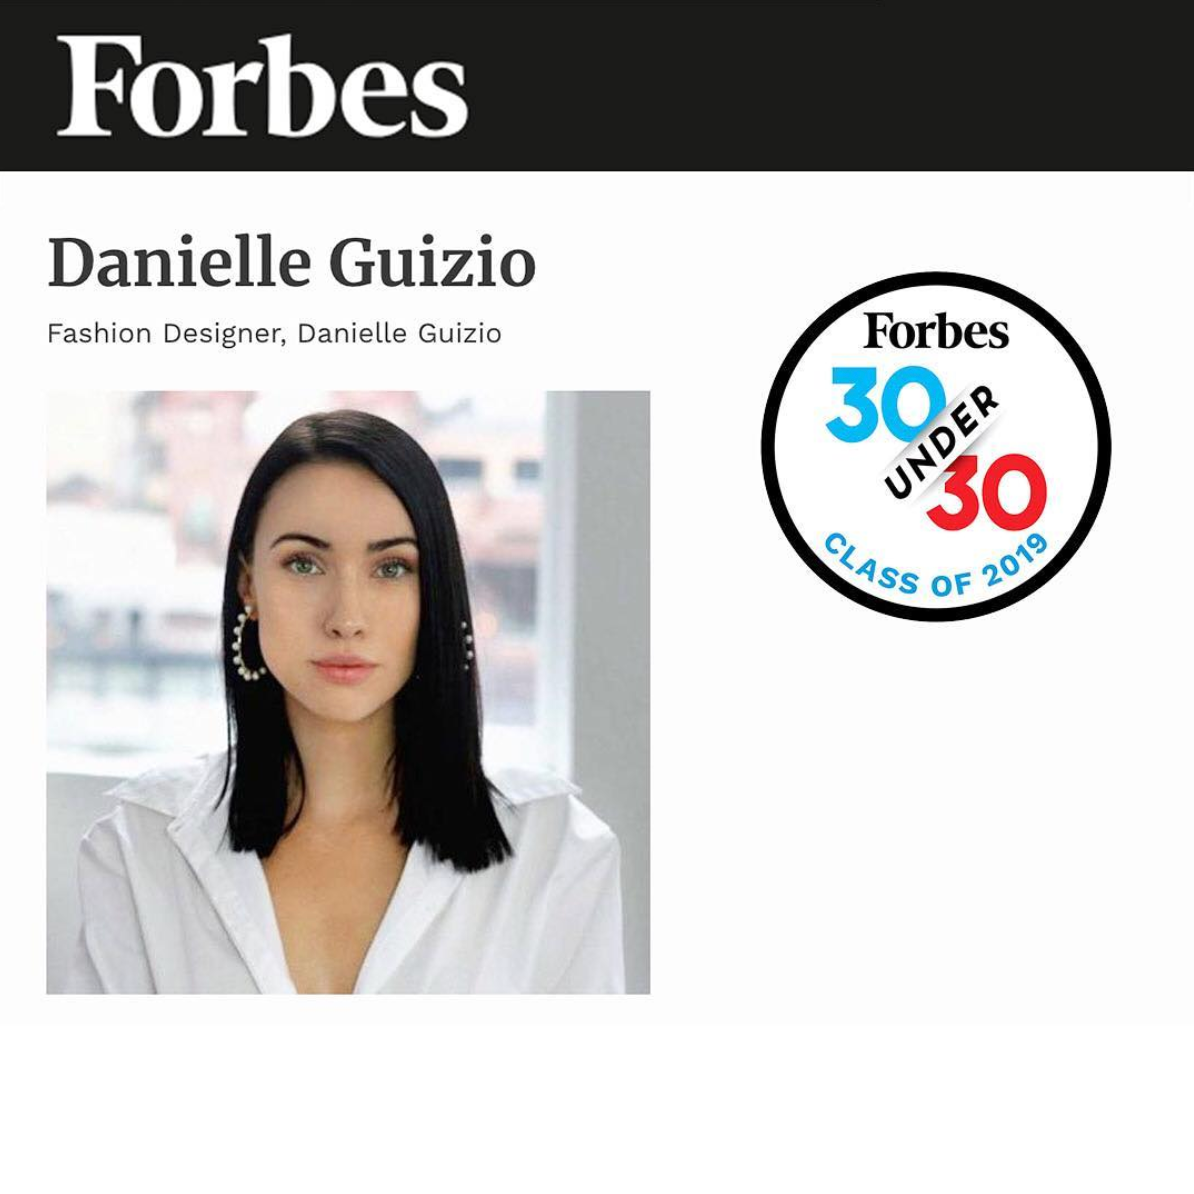 FORBES 30 UNDER 30 CLASS OF 2019